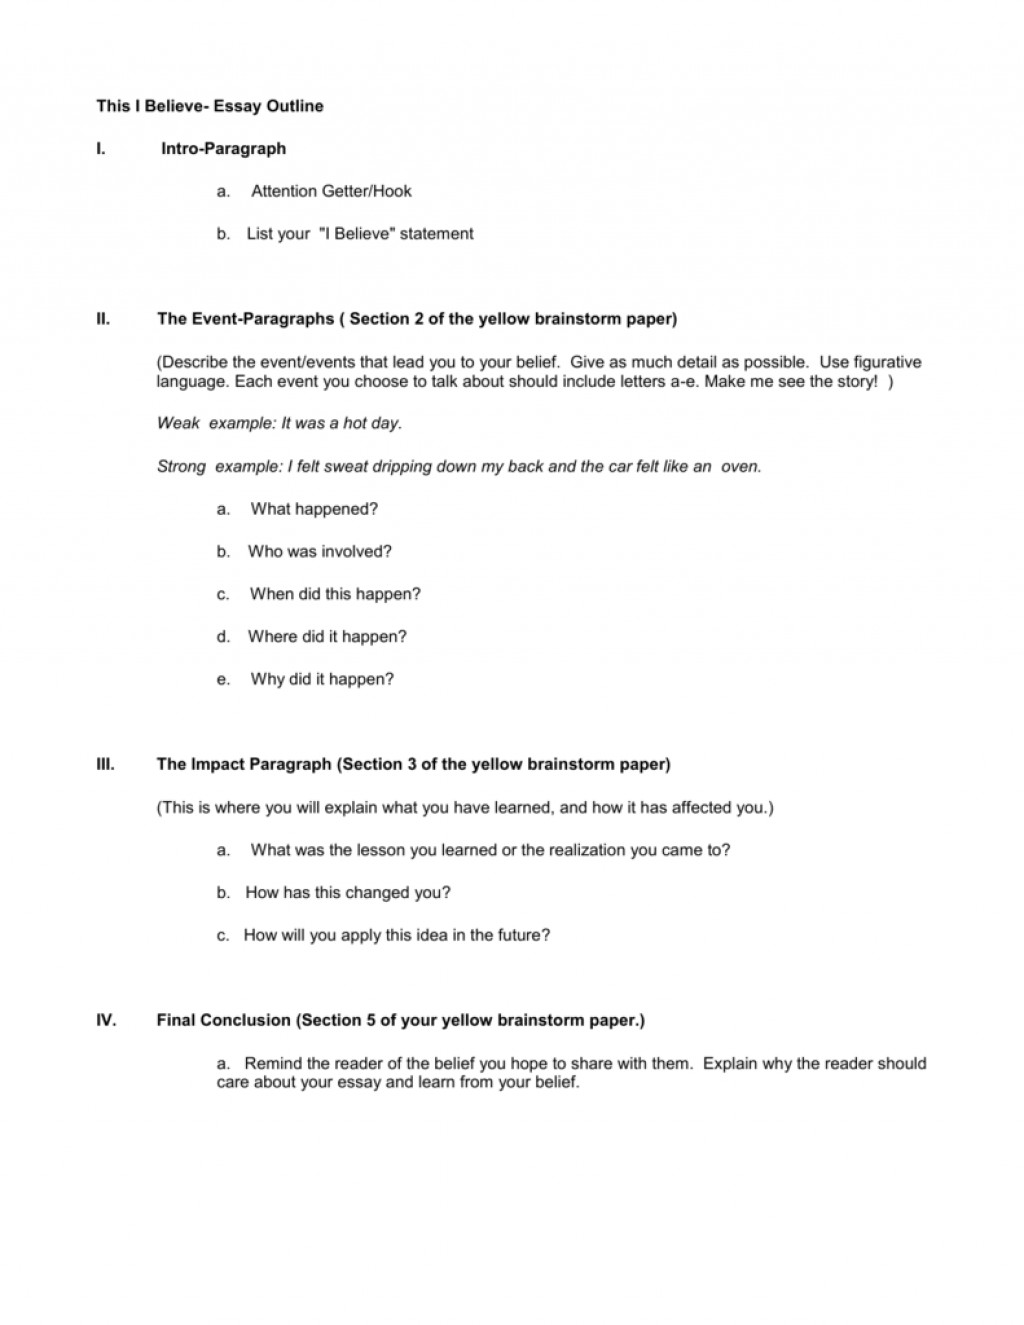 016 Outline Essay Example 007820321 2 Fascinating About Immigration Tok Structure Definition Large